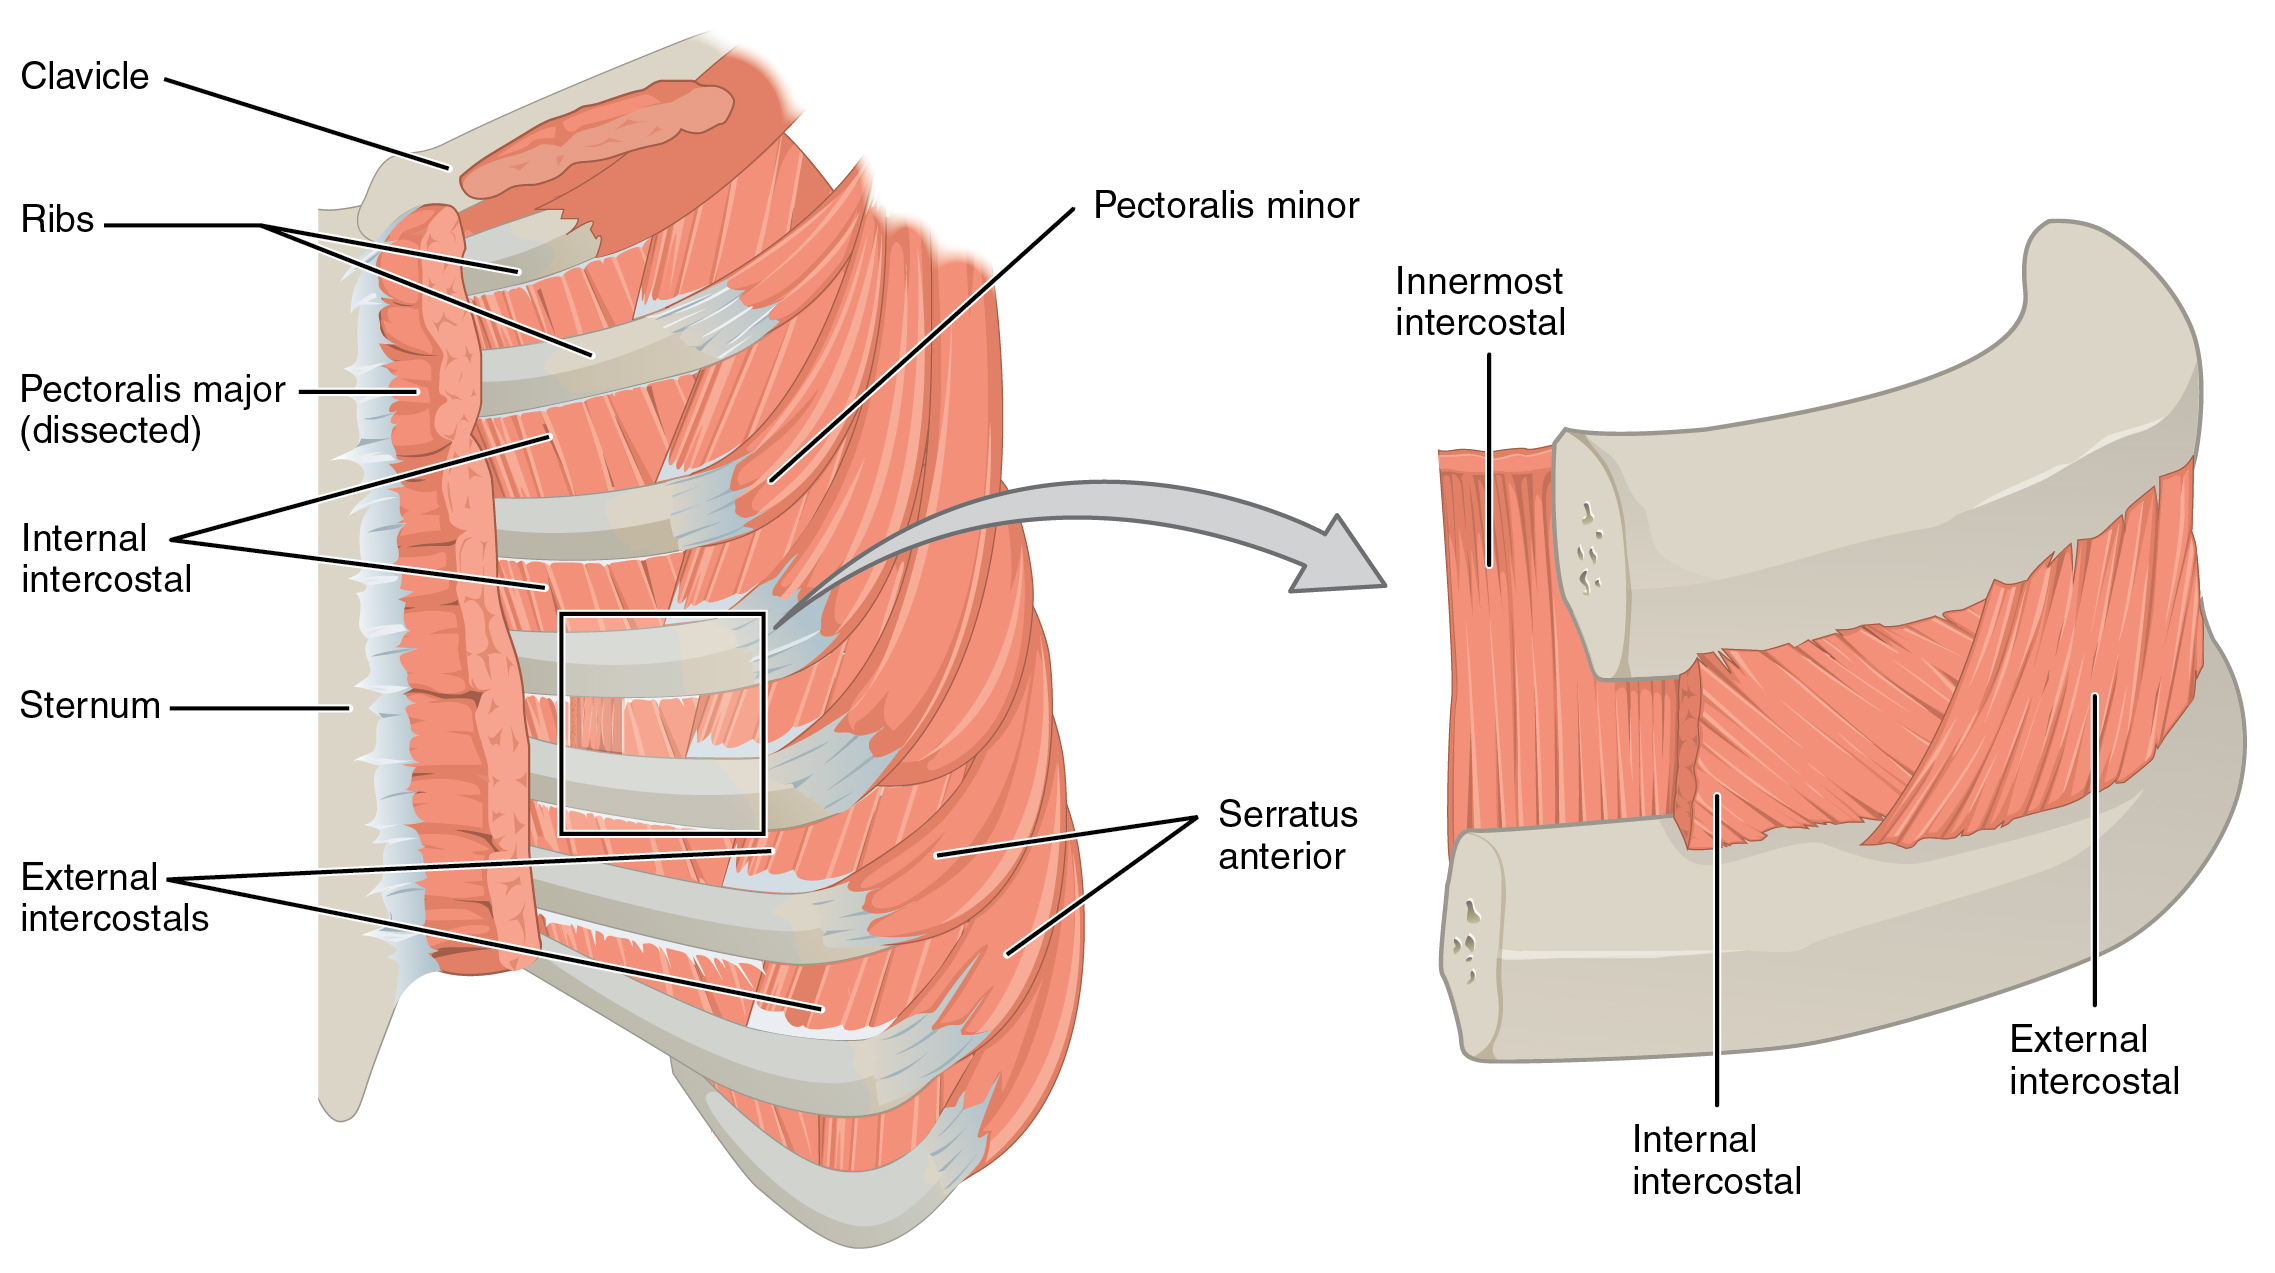 114 Axial Muscles Of The Abdominal Wall And Thorax Anatomy And